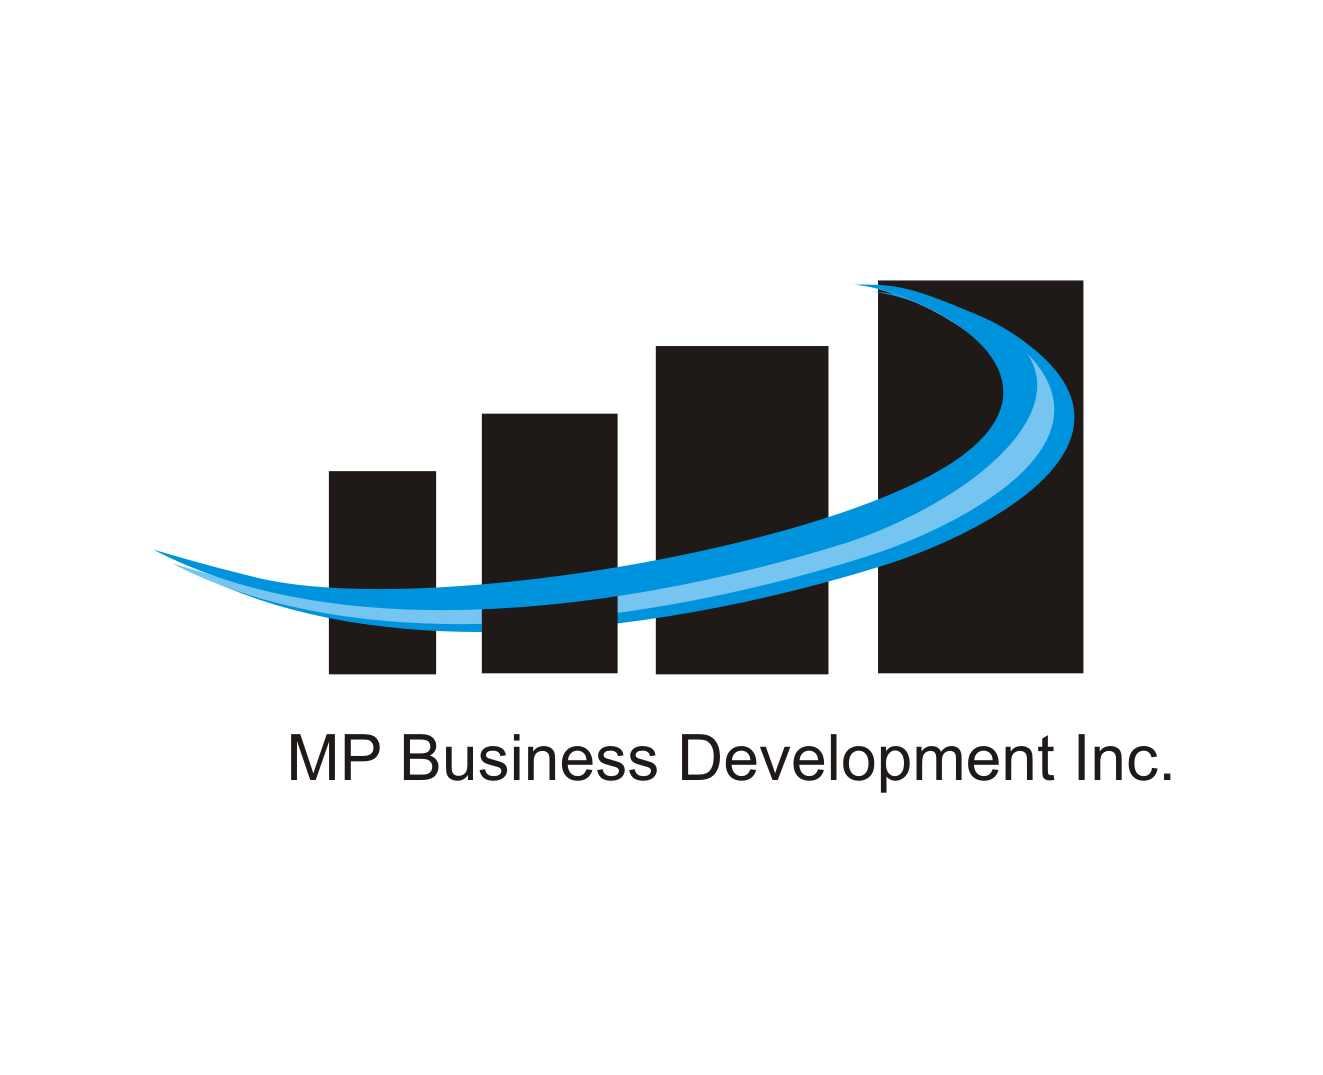 Logo Design by Nthus Nthis - Entry No. 45 in the Logo Design Contest MP Business Development Inc. Logo Design.